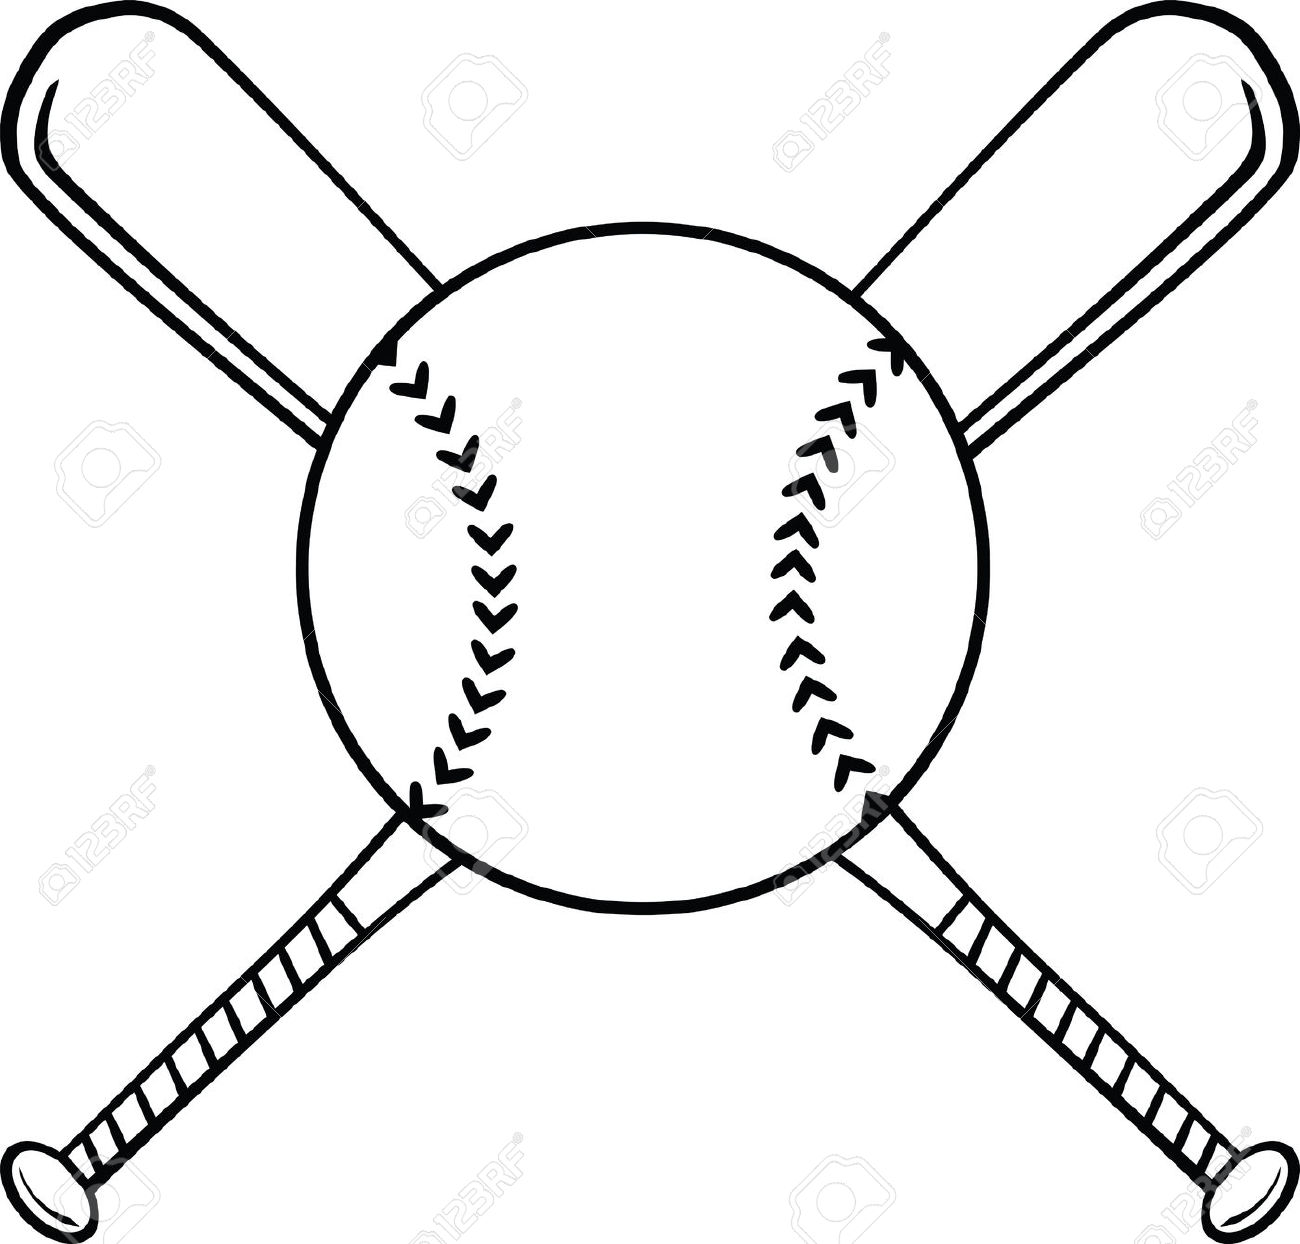 Drawn baseball Ball Softball ClipartFox and Softball